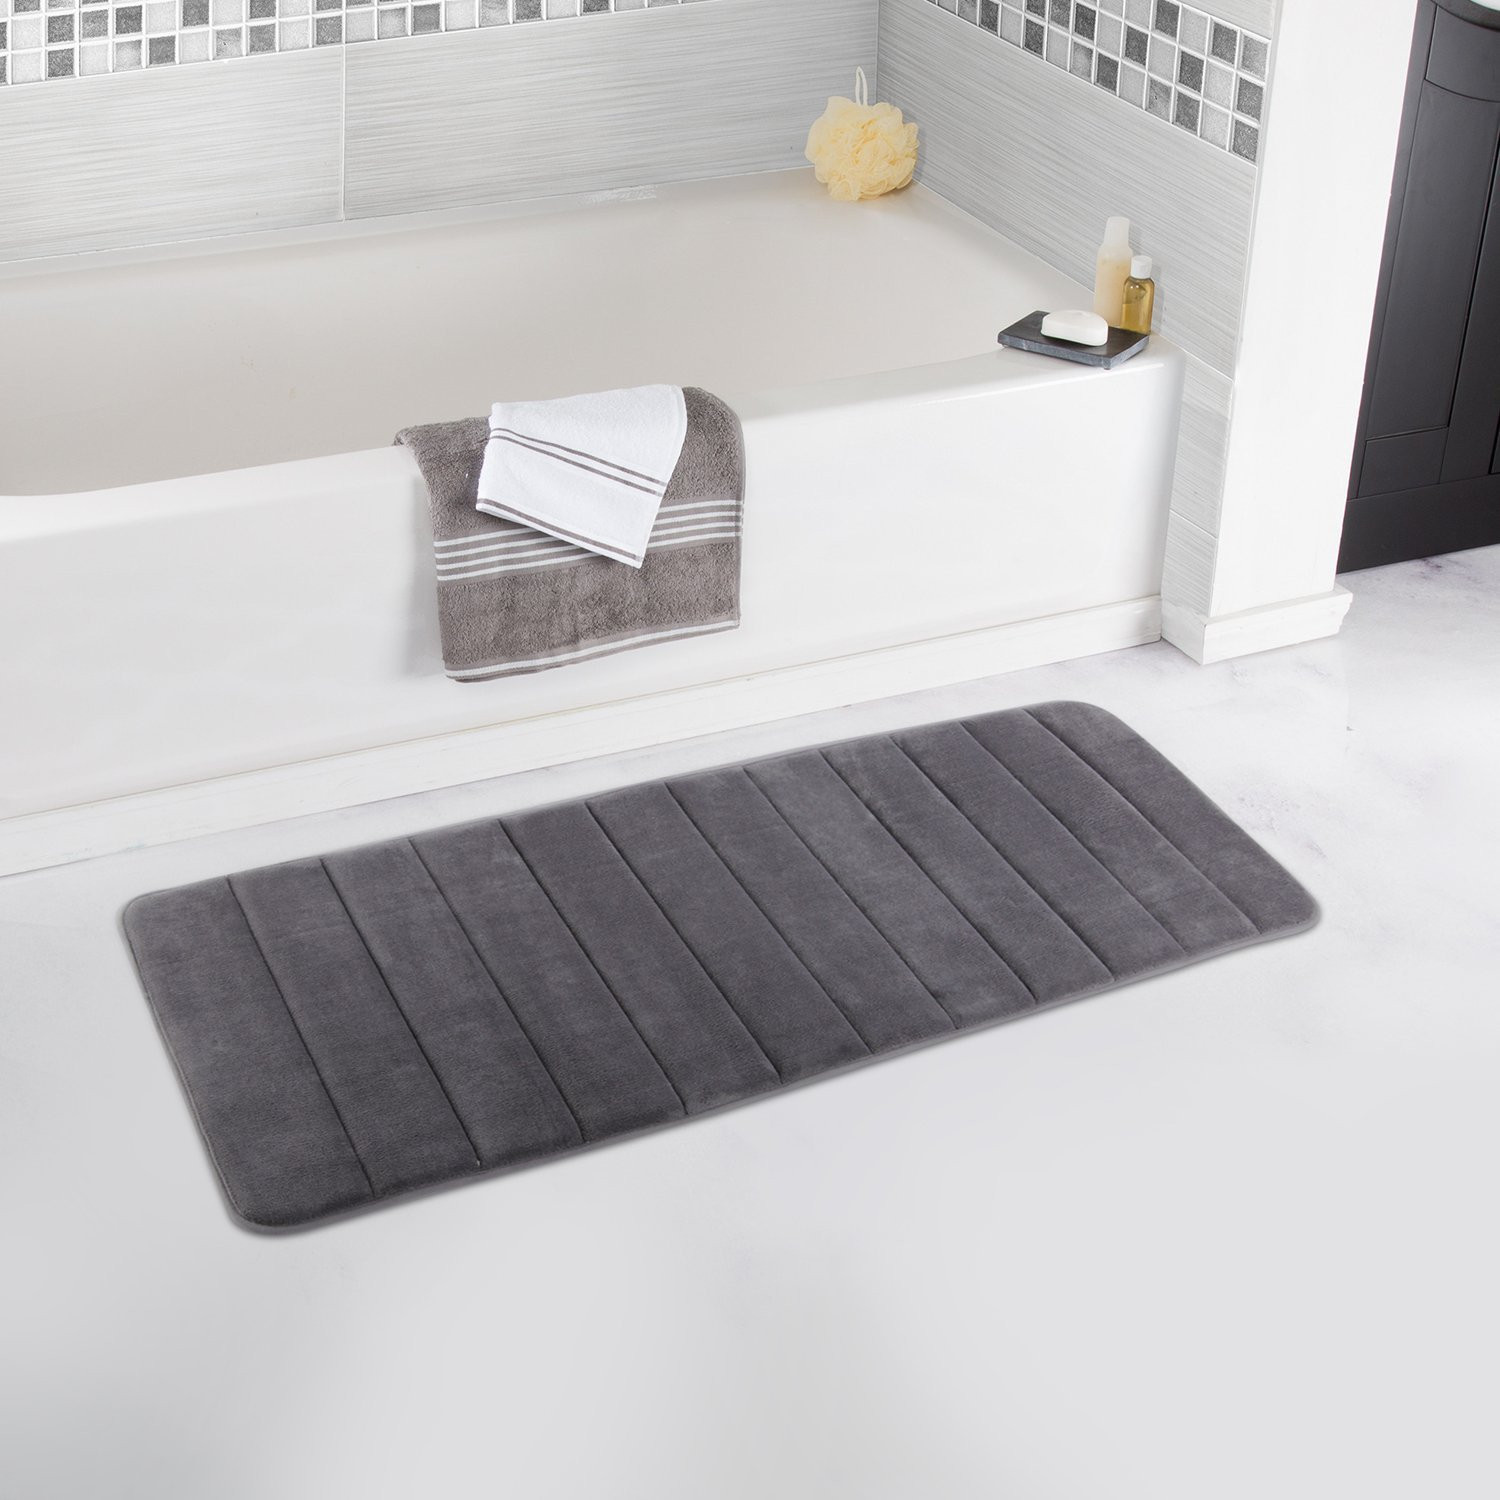 Lifewit 47 X 17 Bath Runner Rug Mat Extra Long Soft Memory Foam